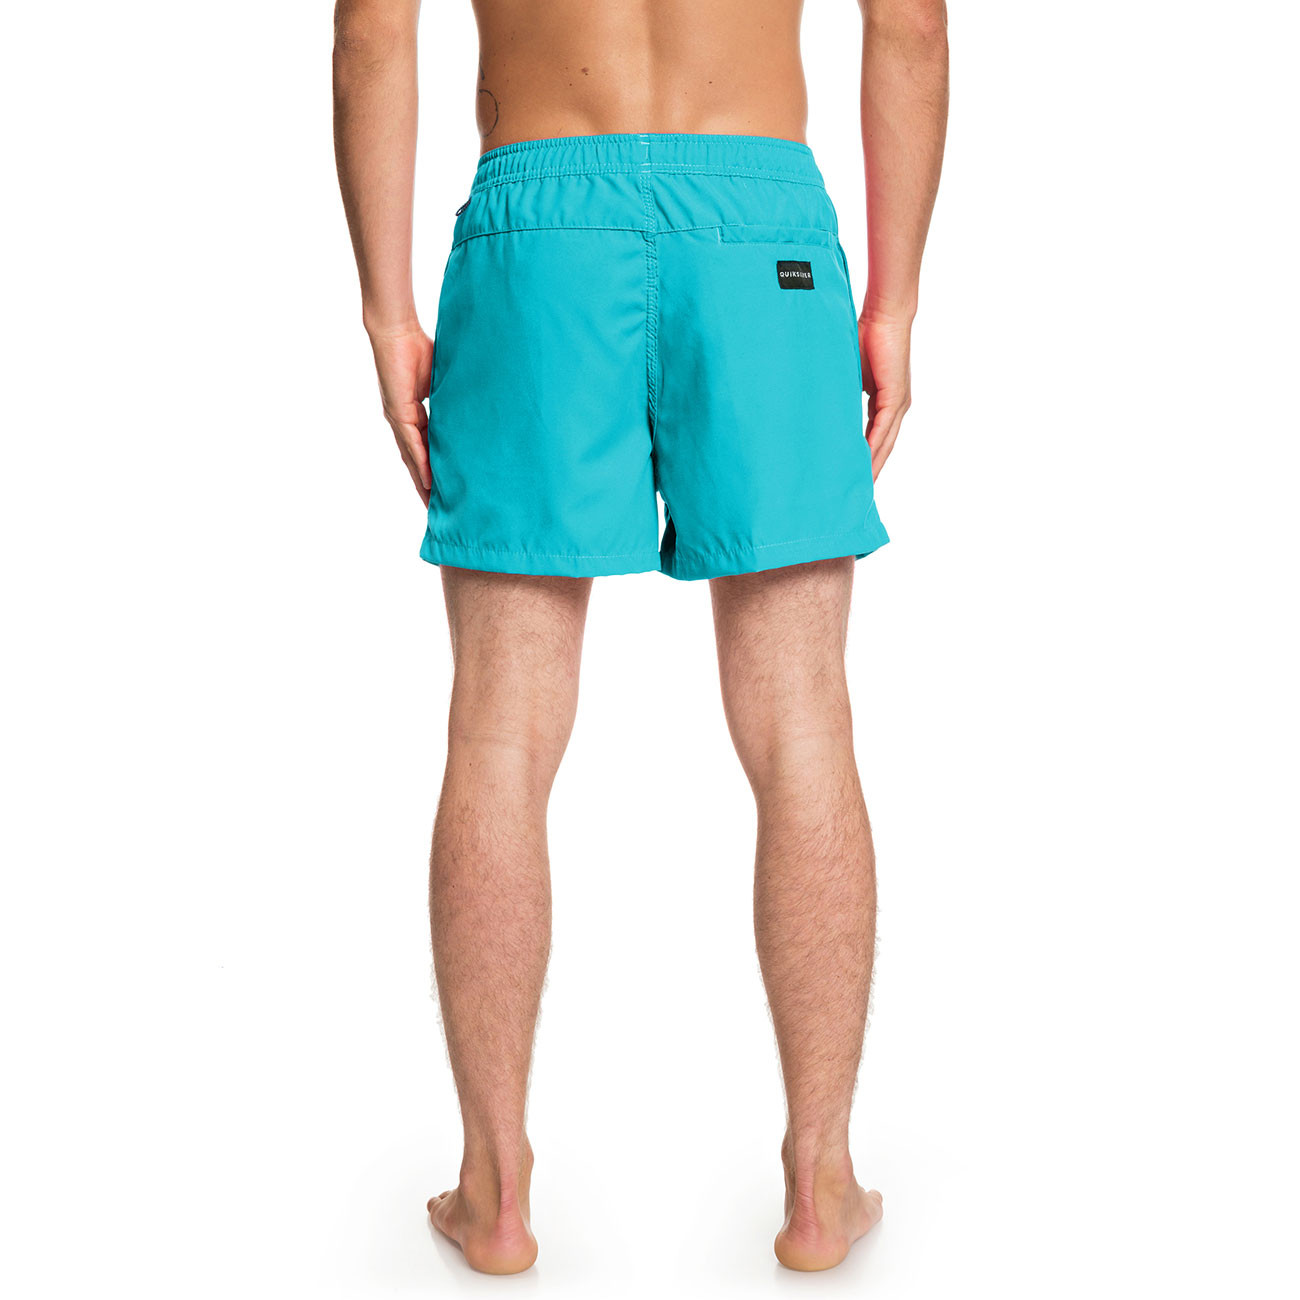 be0caf31c322b4 Strój kąpielowy Quiksilver Everyday Volley 15 atomic blue ...